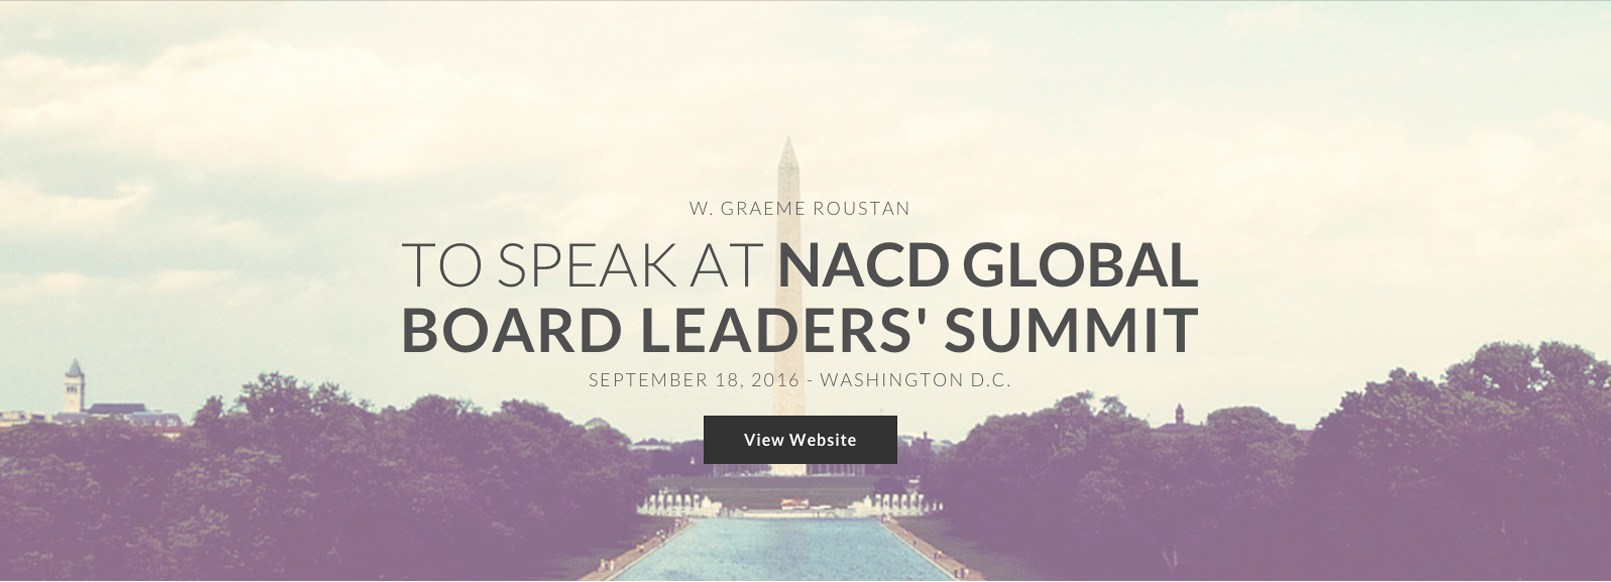 Home Page Sliders Speaker at NACD Summit